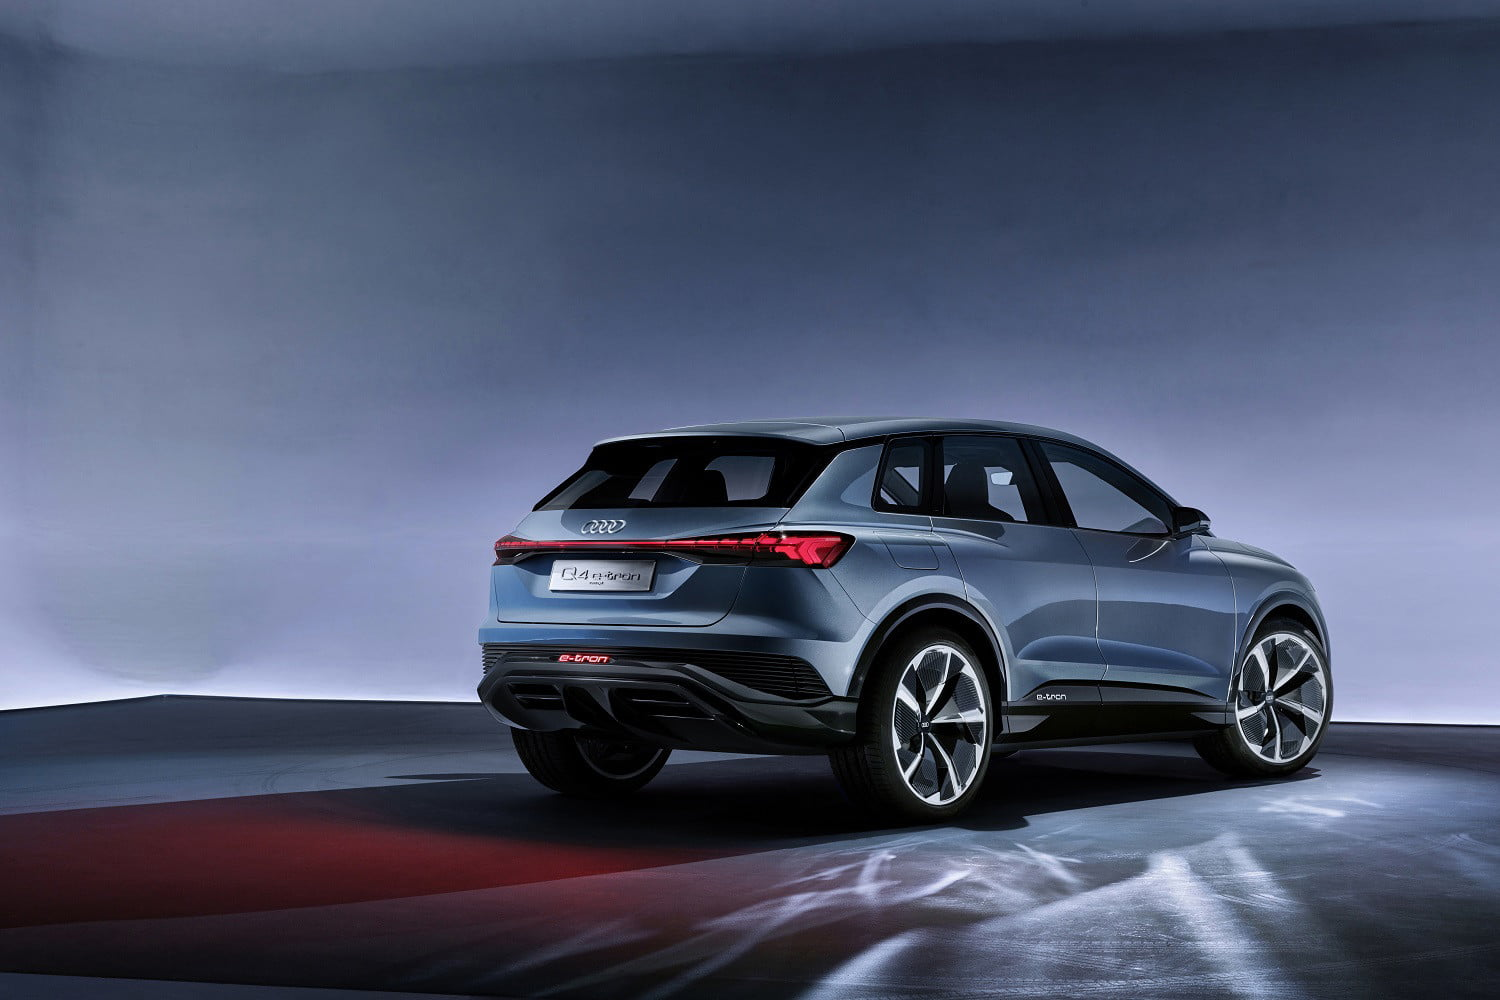 Audi touts fast-charging capability of its oft-hyped (and much delayed) e-tron